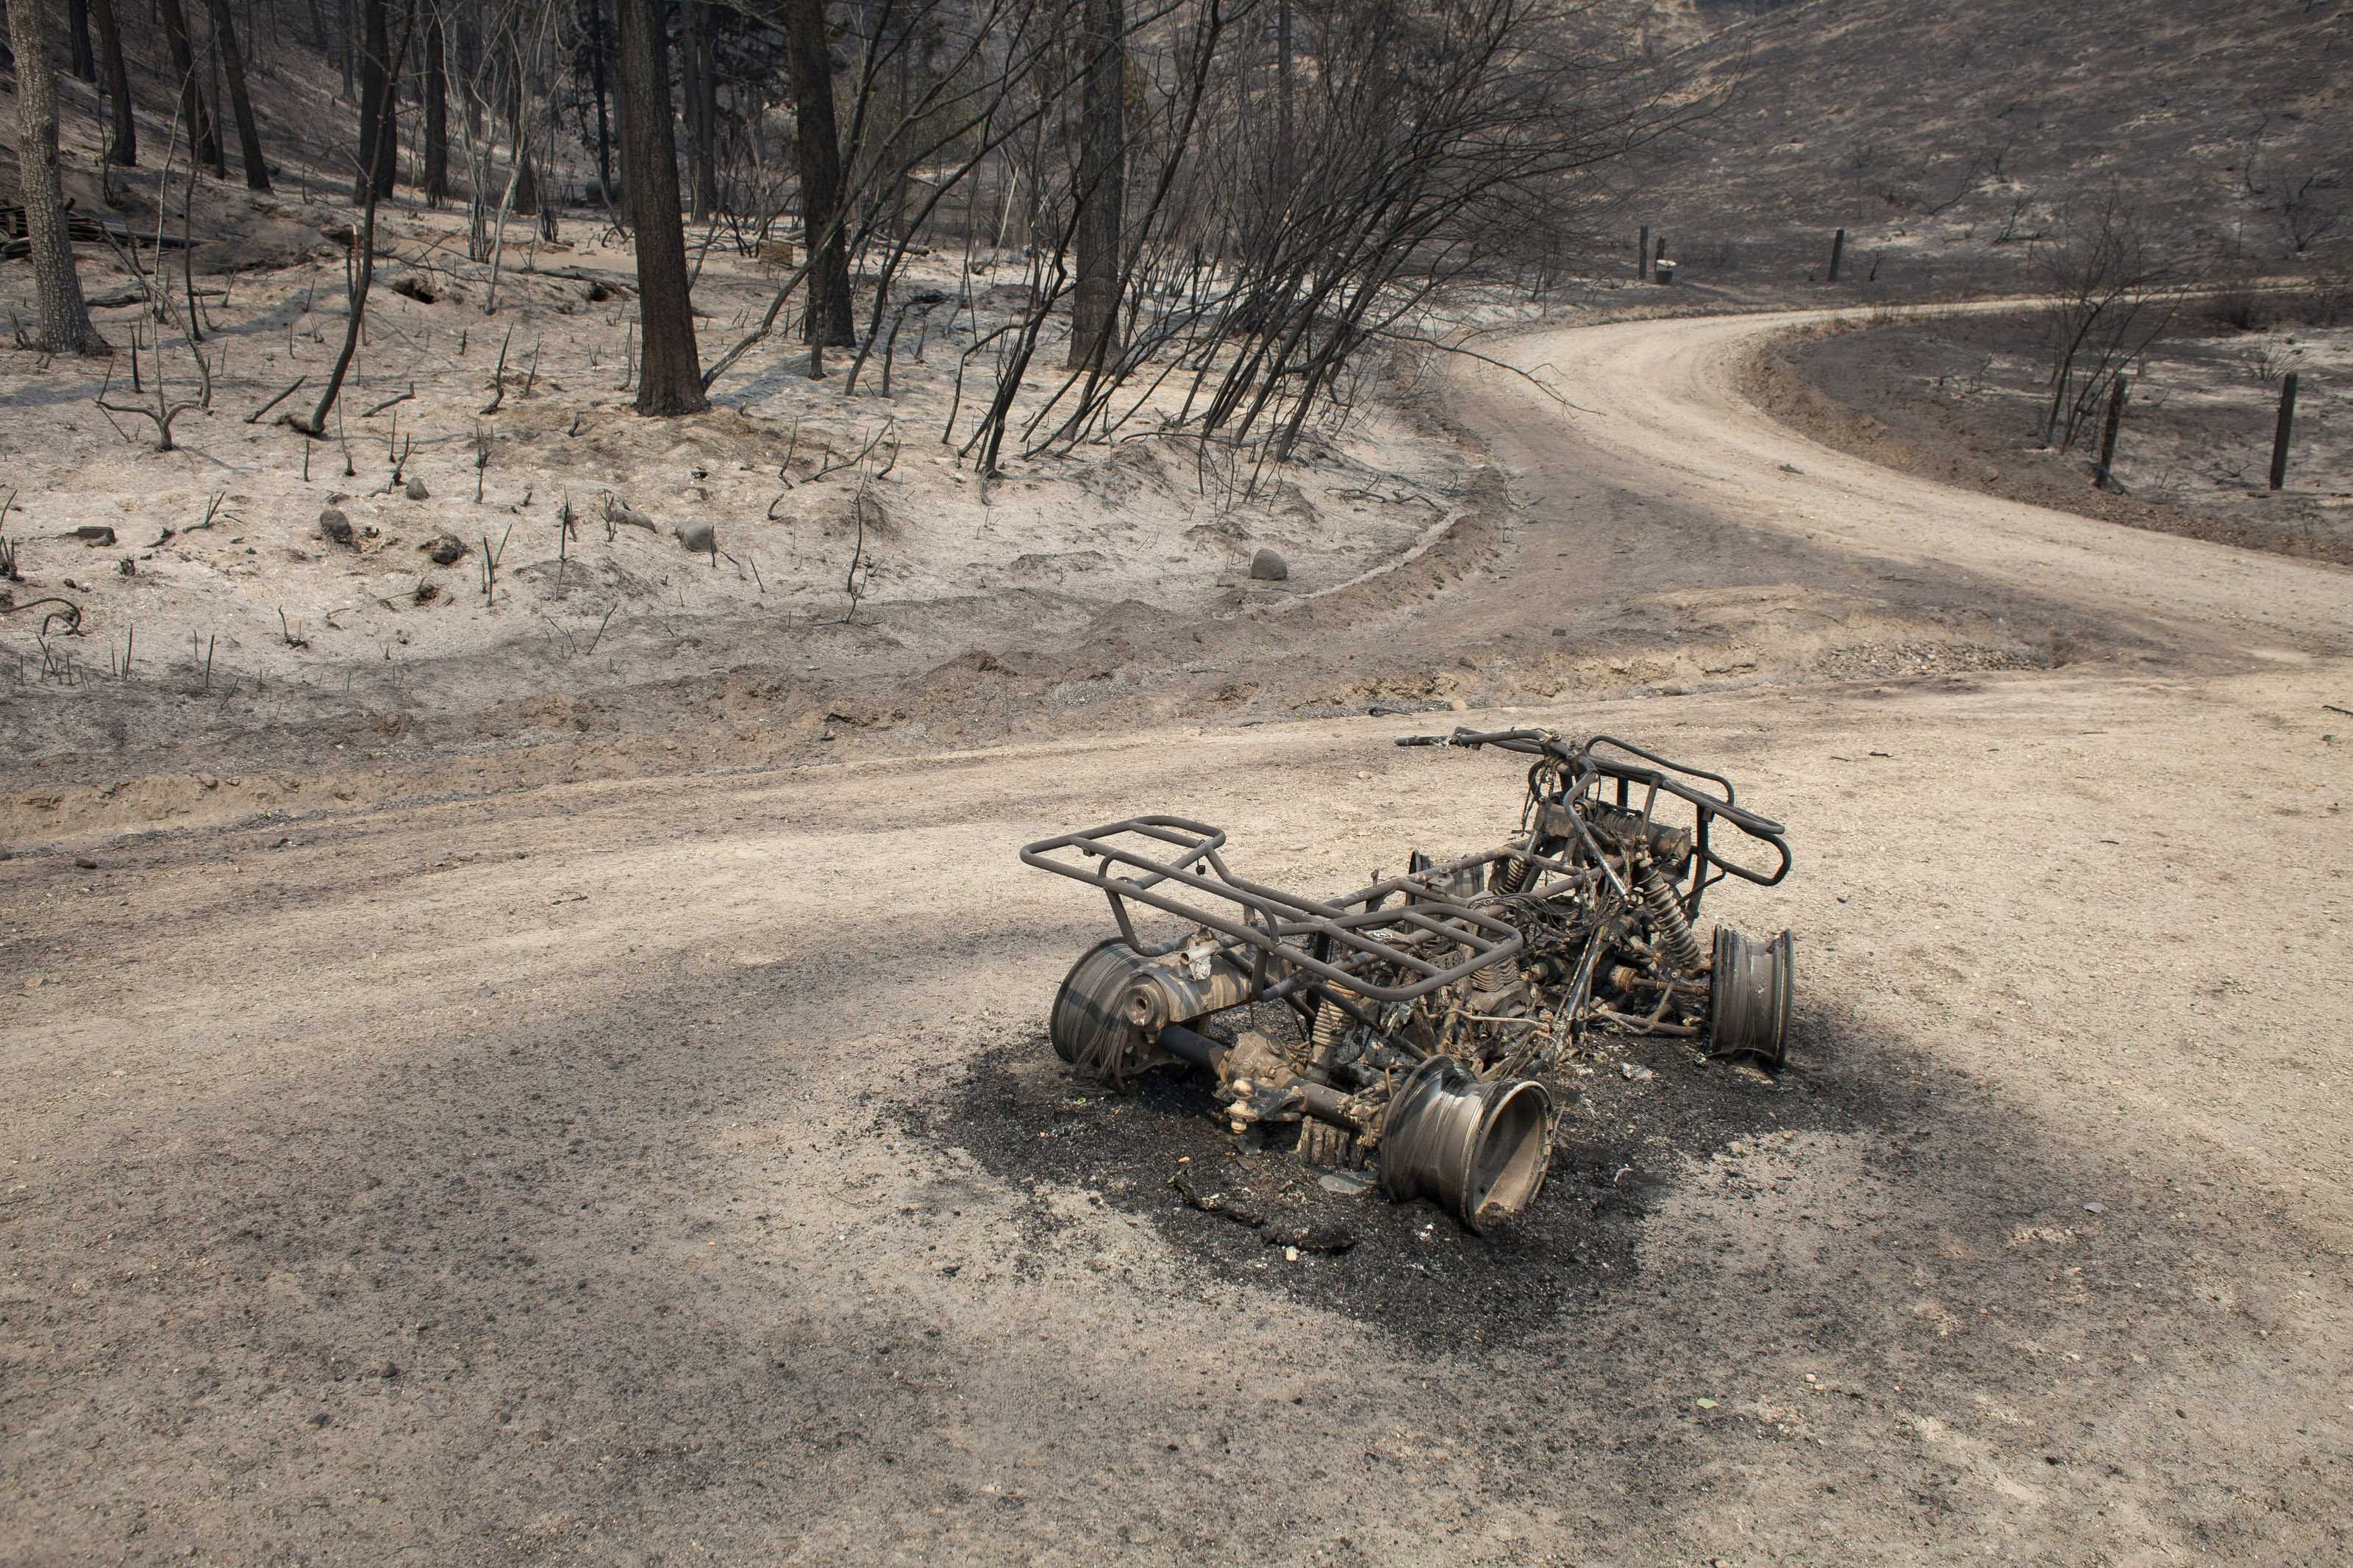 A burnt ATV lies in the road after the Carlton Complex Fire consumed an area near Malott, Washington on July 20, 2014.